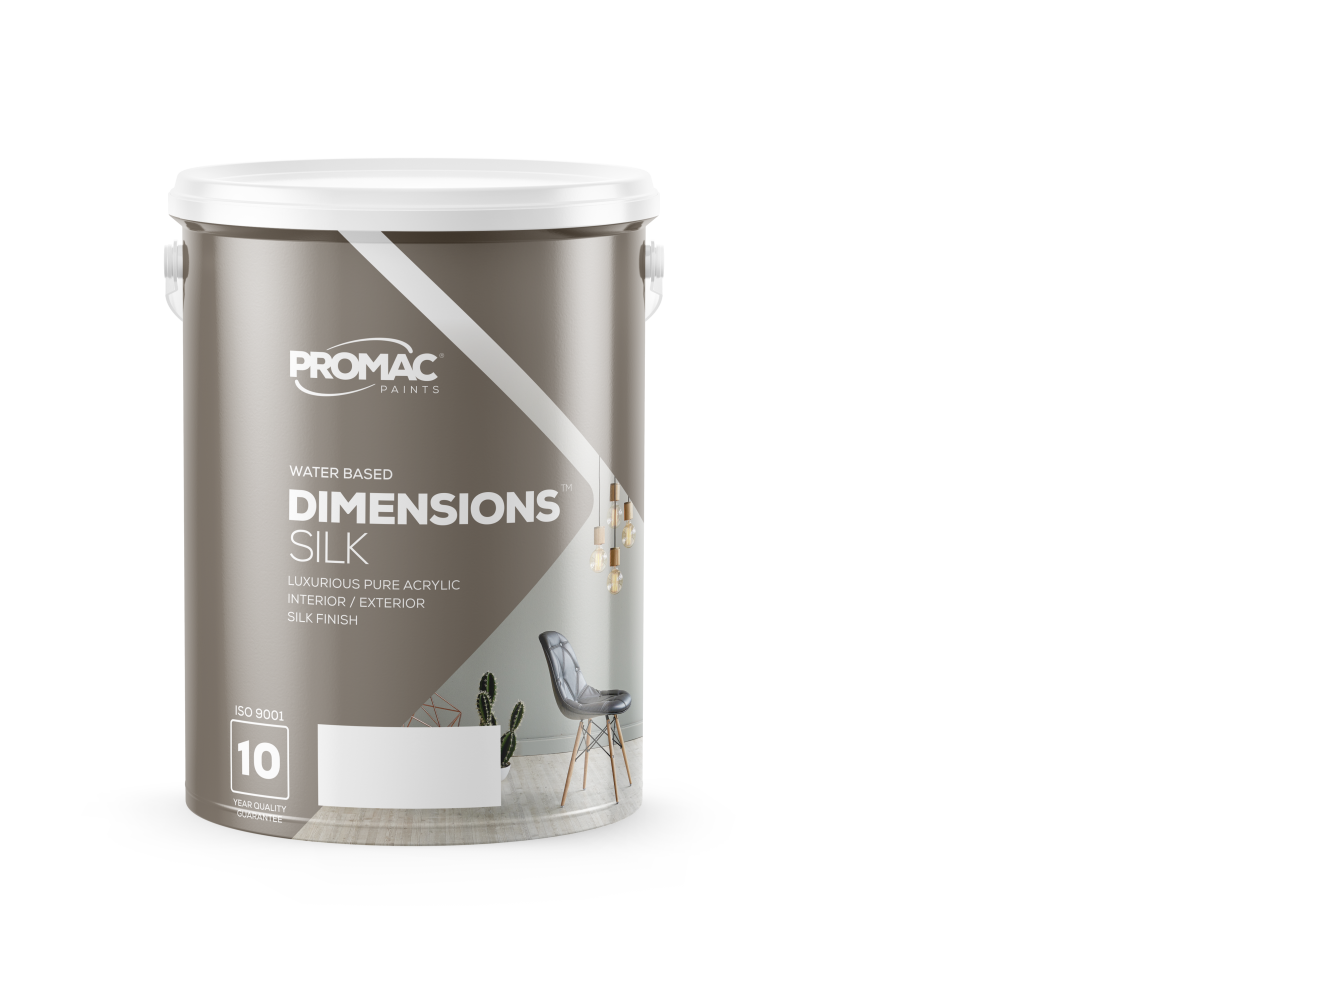 DIMENSIONSSILK - WATER BASEDPromac Dimensions™ Silk is a water-based, pure acrylic, with a high-quality sheen finish and excellent washability making it suitable for high traffic interior and exterior areas. It has excellent adhesive properties and is stain and water resistant.